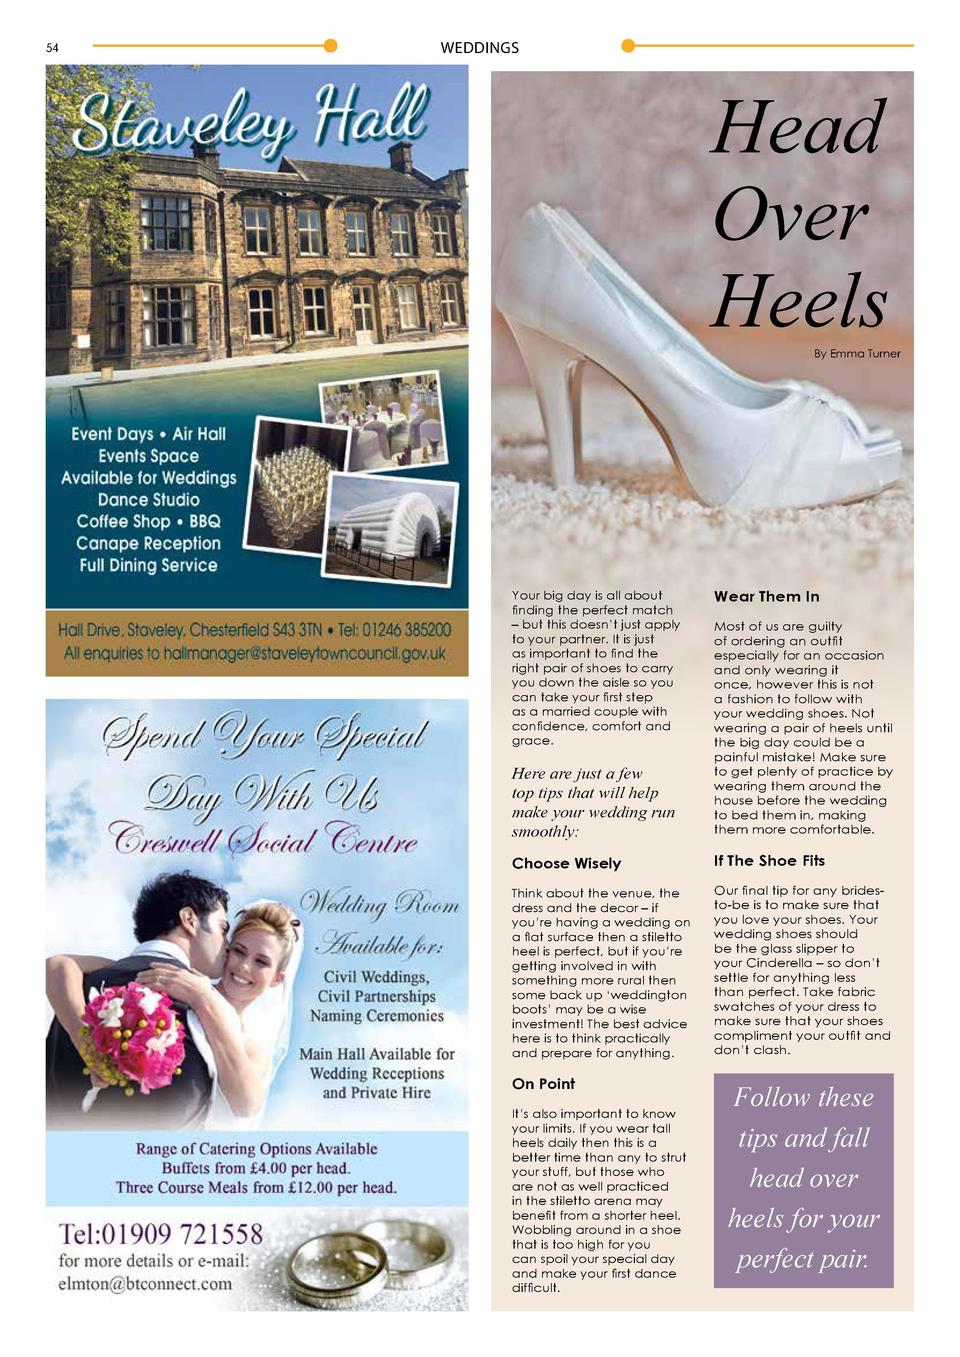 54  WEDDINGS  WEDDINGS  Head Over Heels  55  THE COUNTRY COTTAGE  HOTEL   RESTAURANT  By Emma Turner  Your big day is all ...